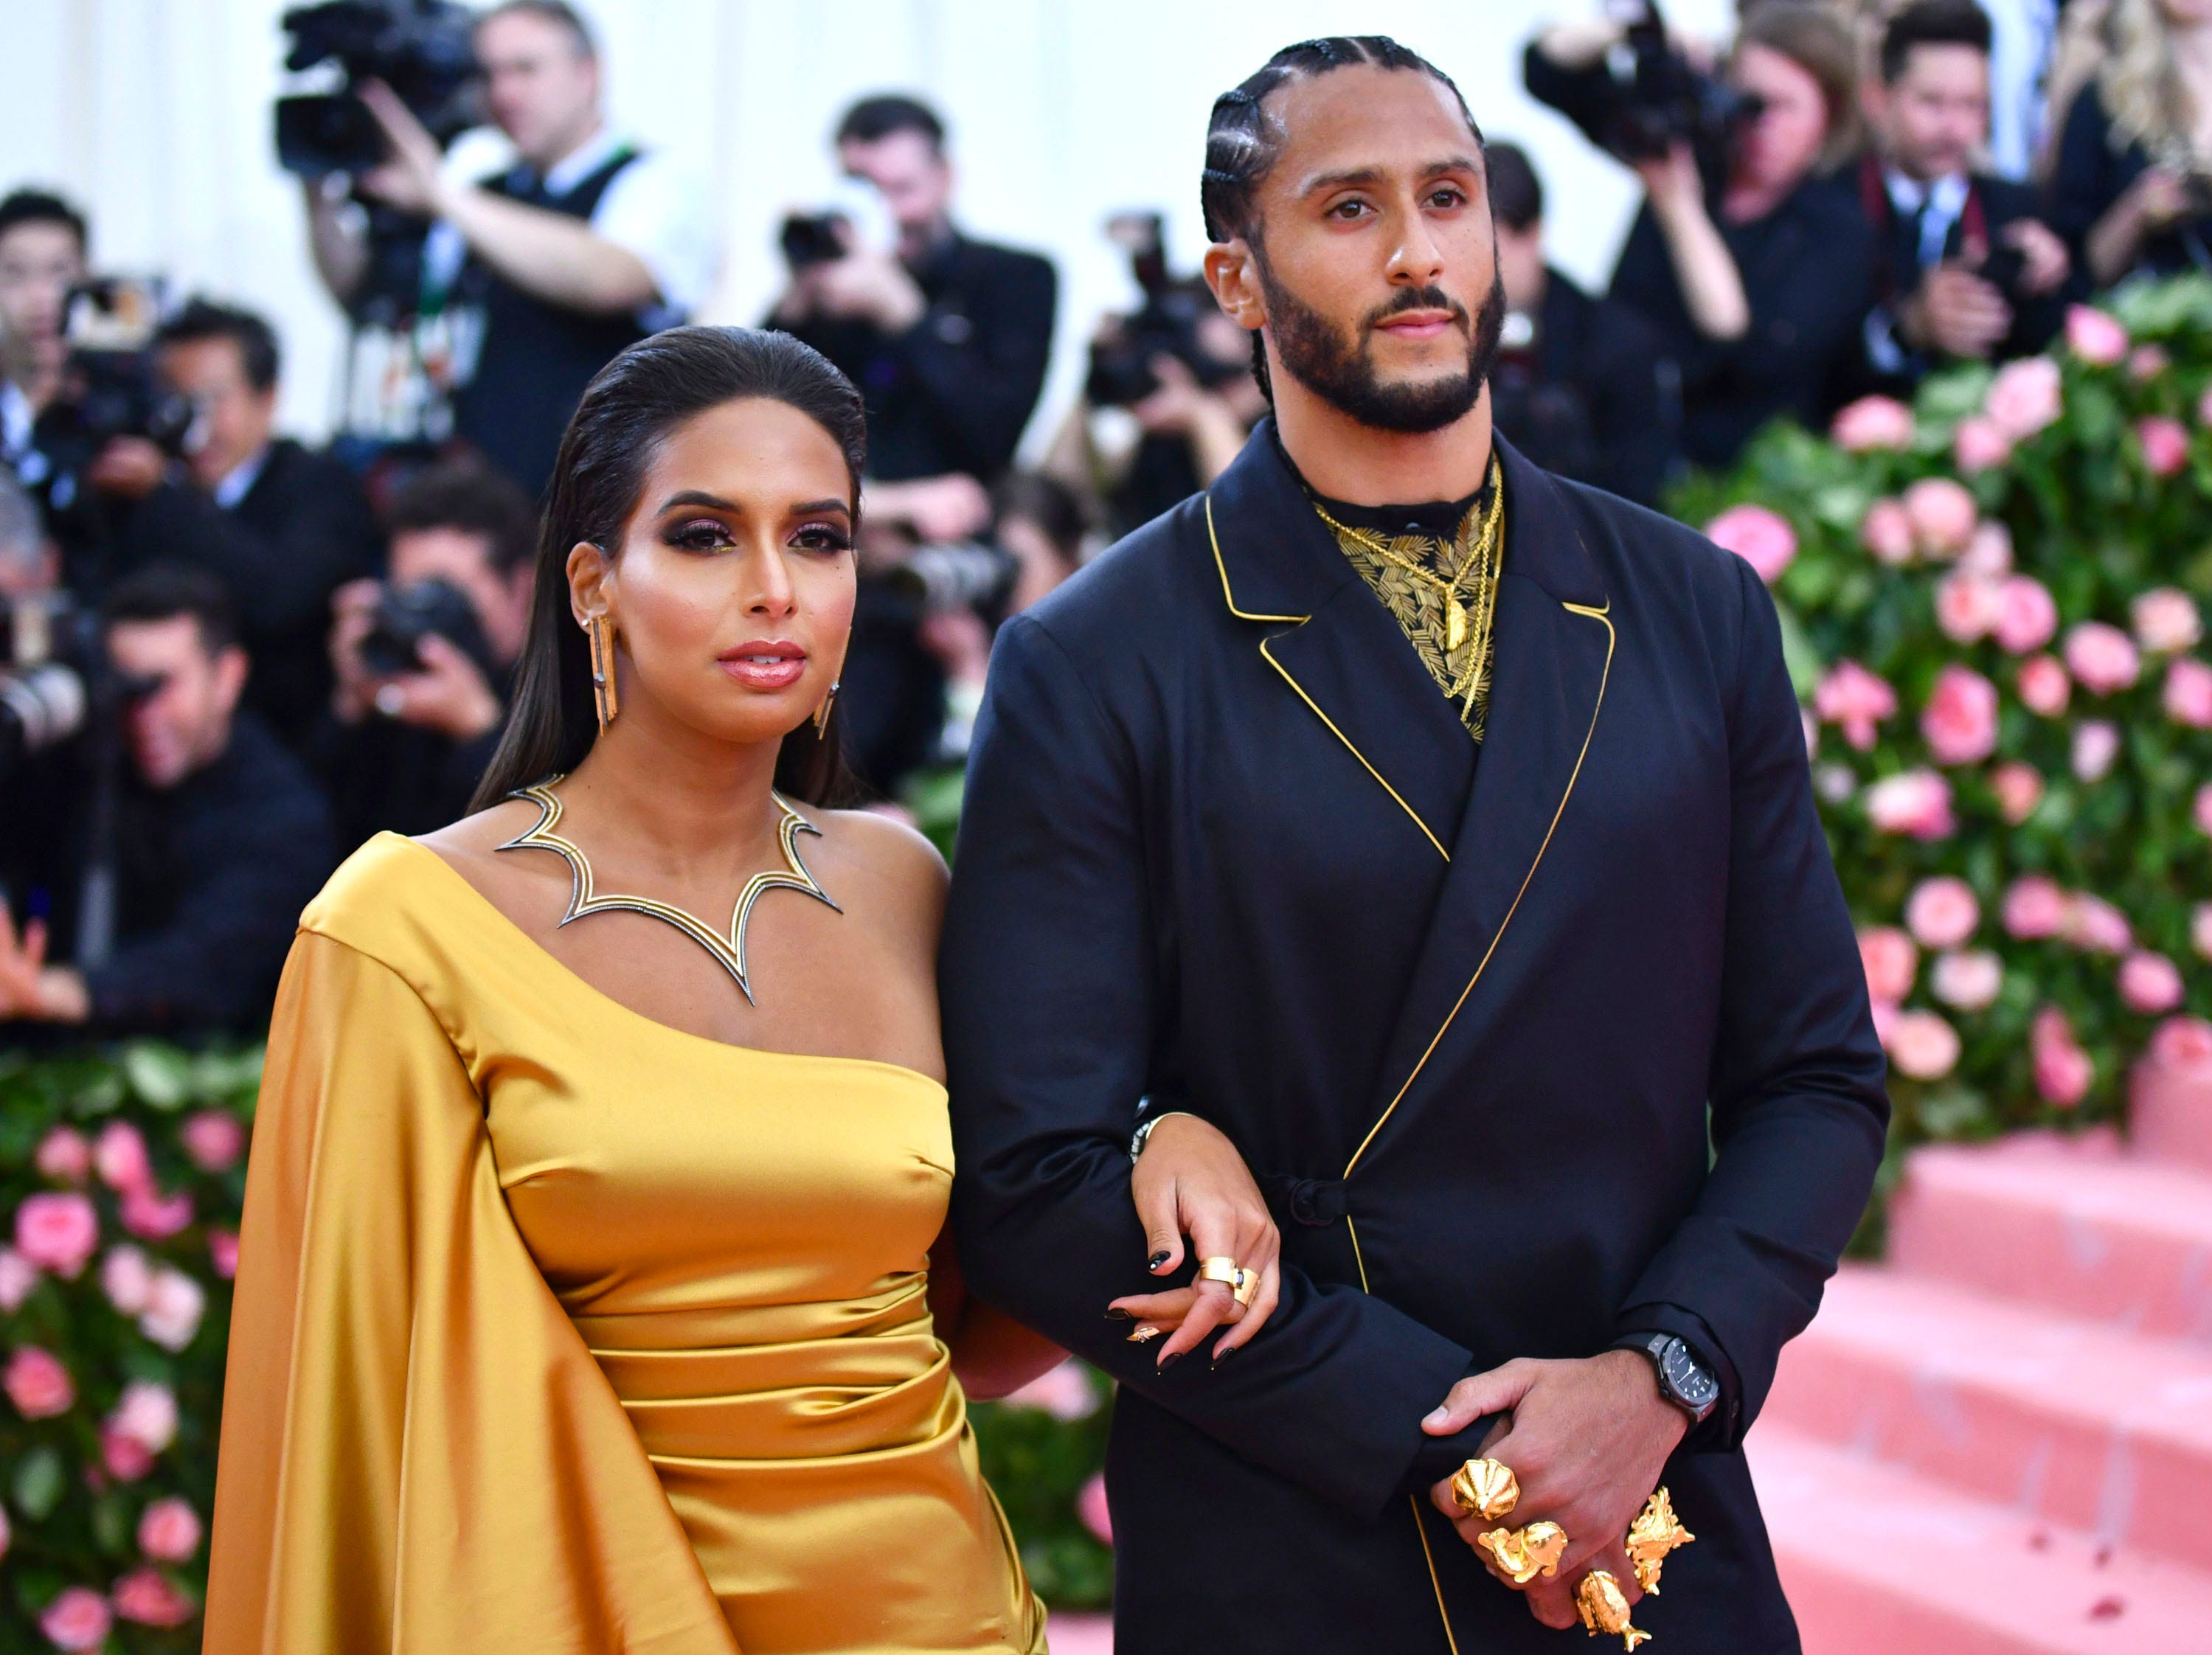 """Nessa, left, and Colin Kaepernick attend The Metropolitan Museum of Art's Costume Institute benefit gala celebrating the opening of the """"Camp: Notes on Fashion"""" exhibition on Monday, May 6, 2019, in New York. (Photo by Charles Sykes/Invision/AP) ORG XMIT: NYJW323"""